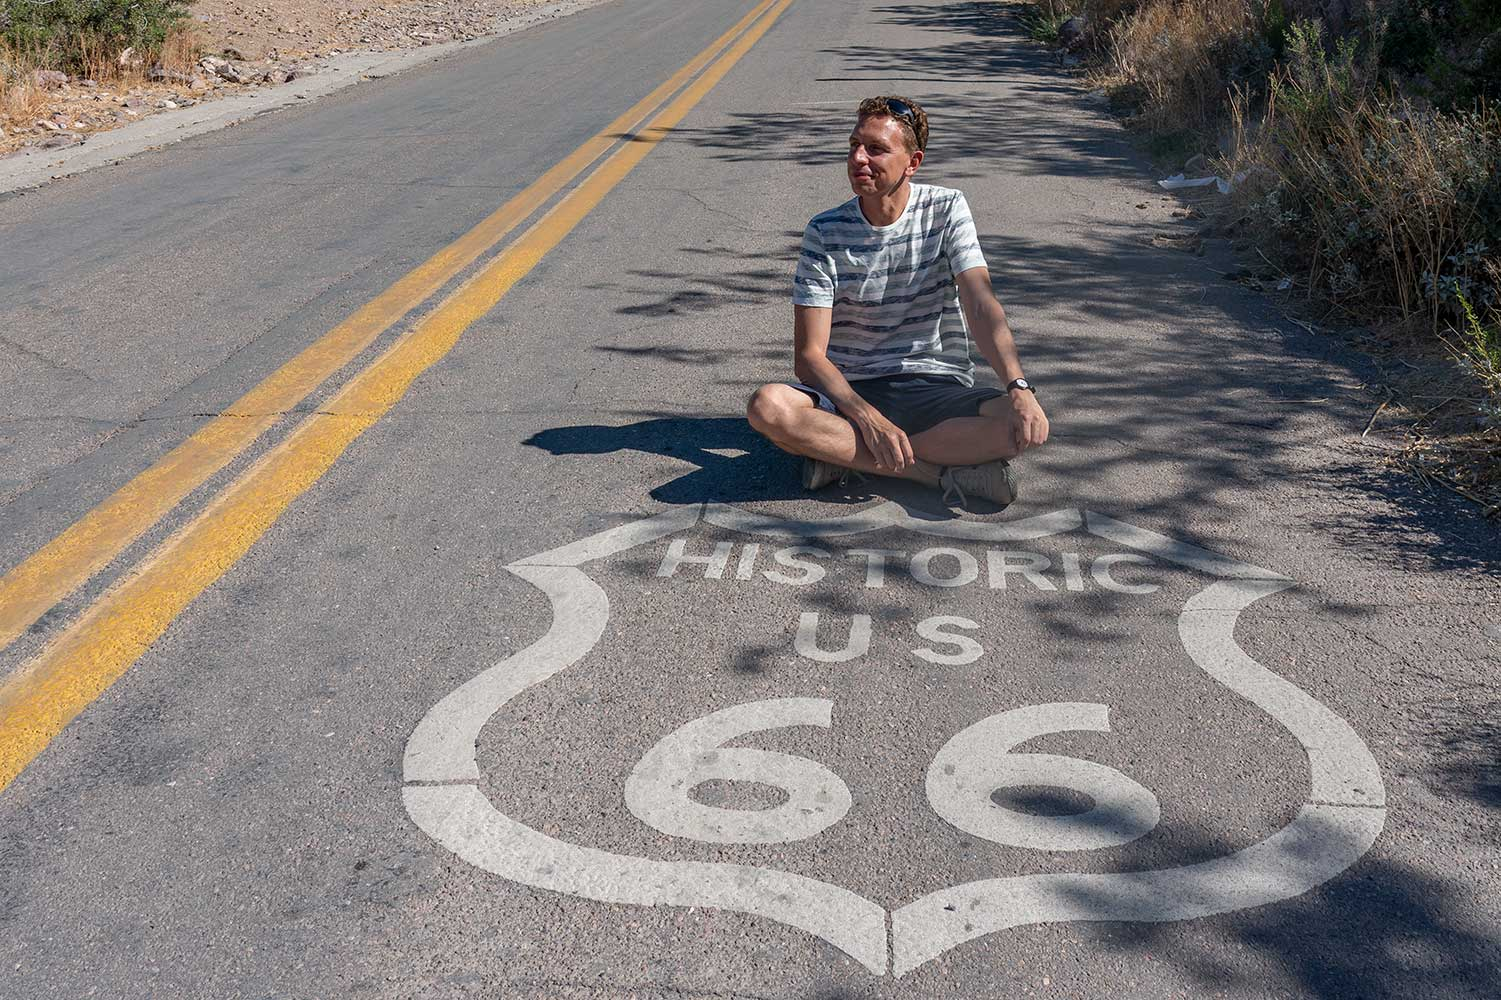 Roadtrip USA - Route66